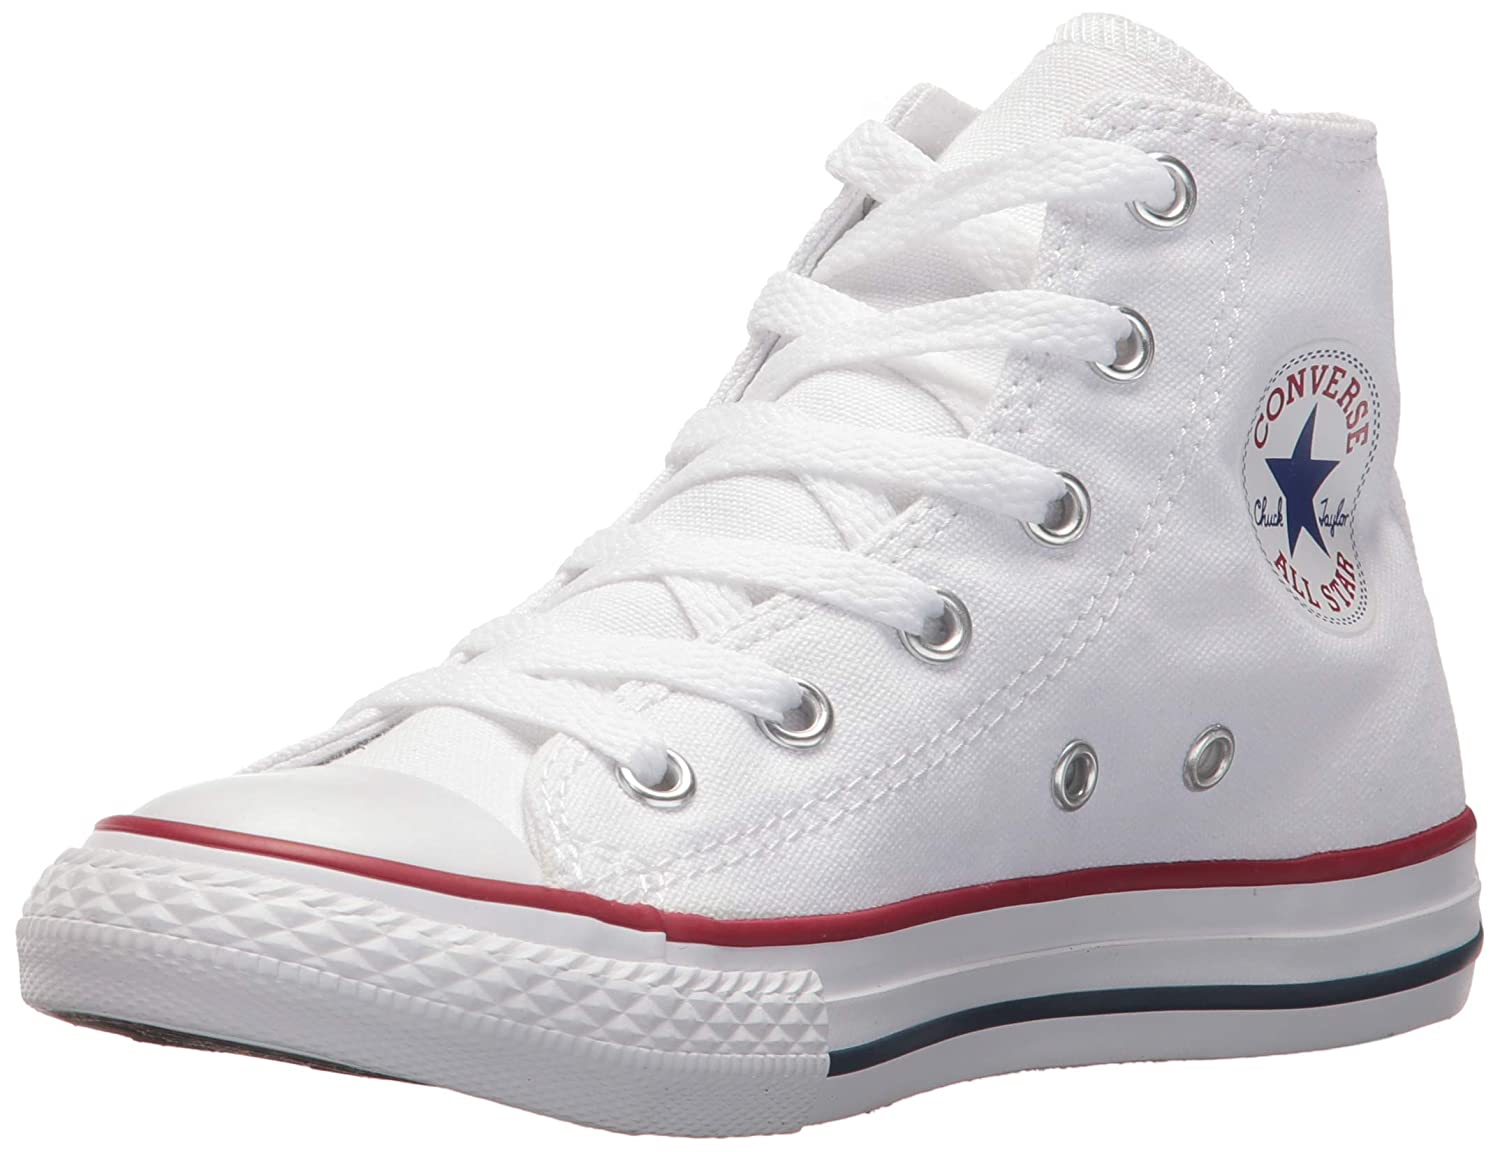 Converse Ctas Baskets Core mixte Hi, Baskets Core mode mixte adulte b8baaaf - boatplans.space